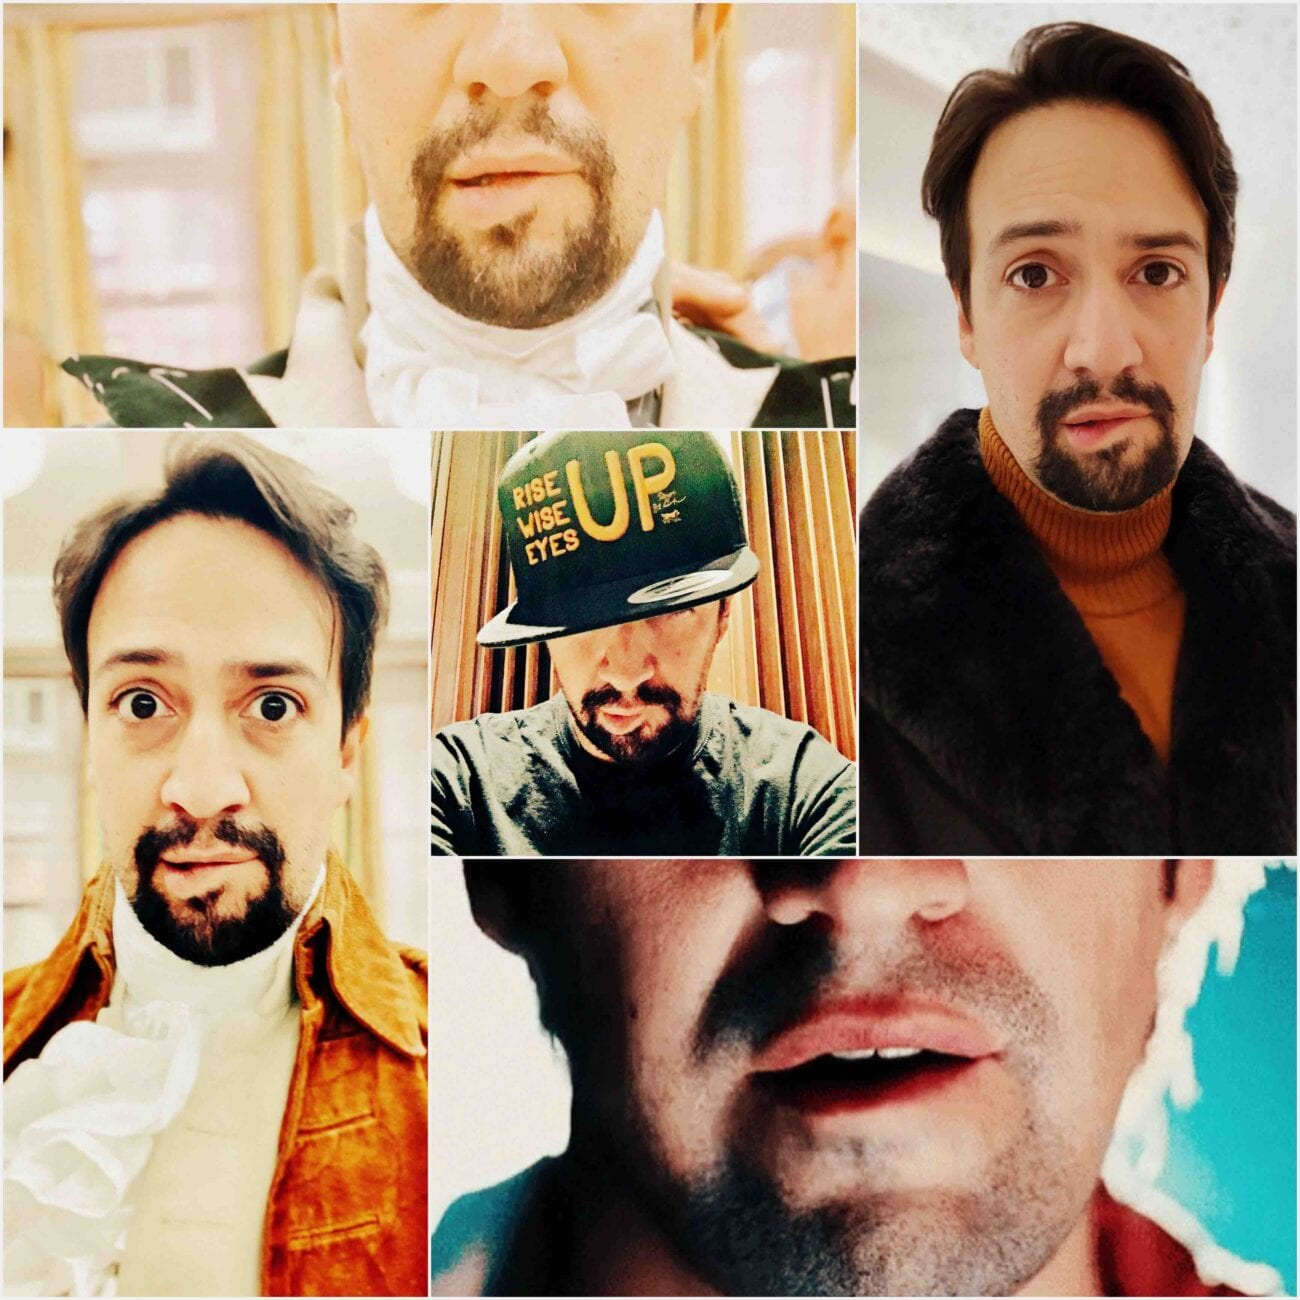 Where there's a funny or random picture of a celebrity, there's sure to be a meme. Here's the hilarious Lin Manuel-Miranda meme.